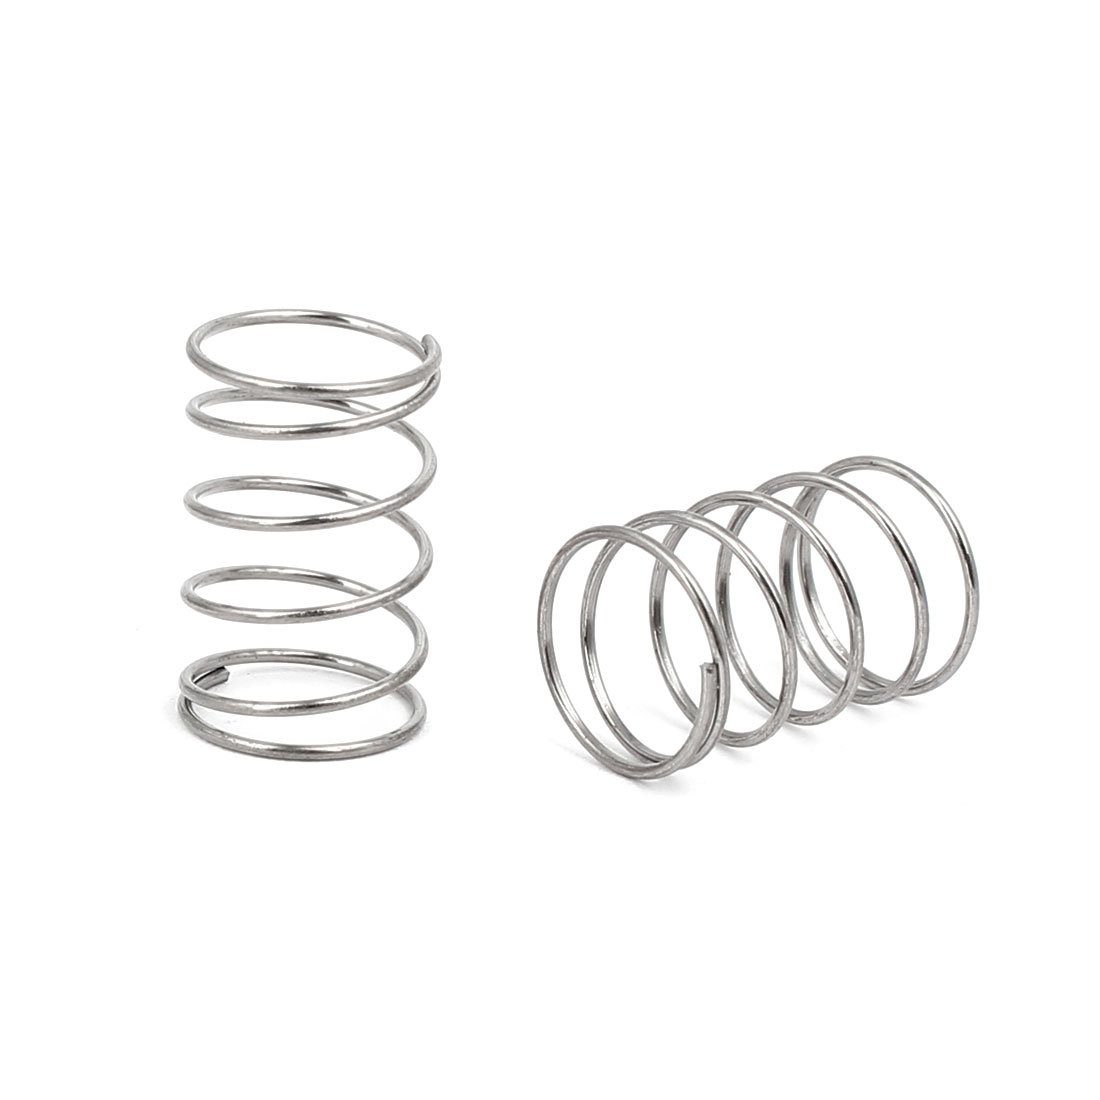 sourcingmap 0.6mmx10mmx15mm 304 Stainless Steel Compression Springs Silver Tone 10pcs